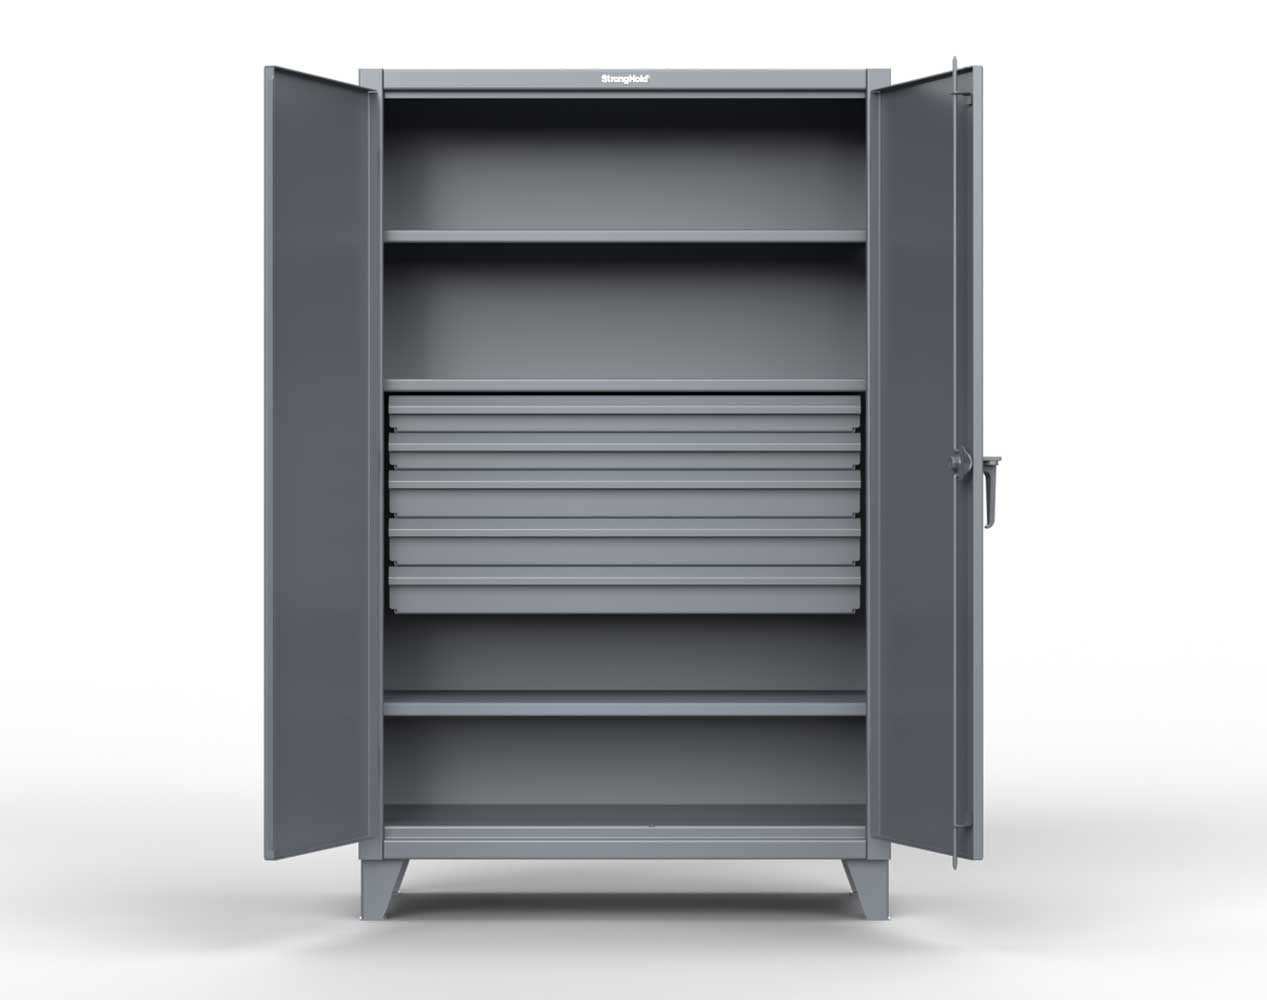 Extra Heavy Duty 12 GA Cabinet with 5 Drawers, 3 Shelves – 36 In. W x 24 In. D x 78 In. H